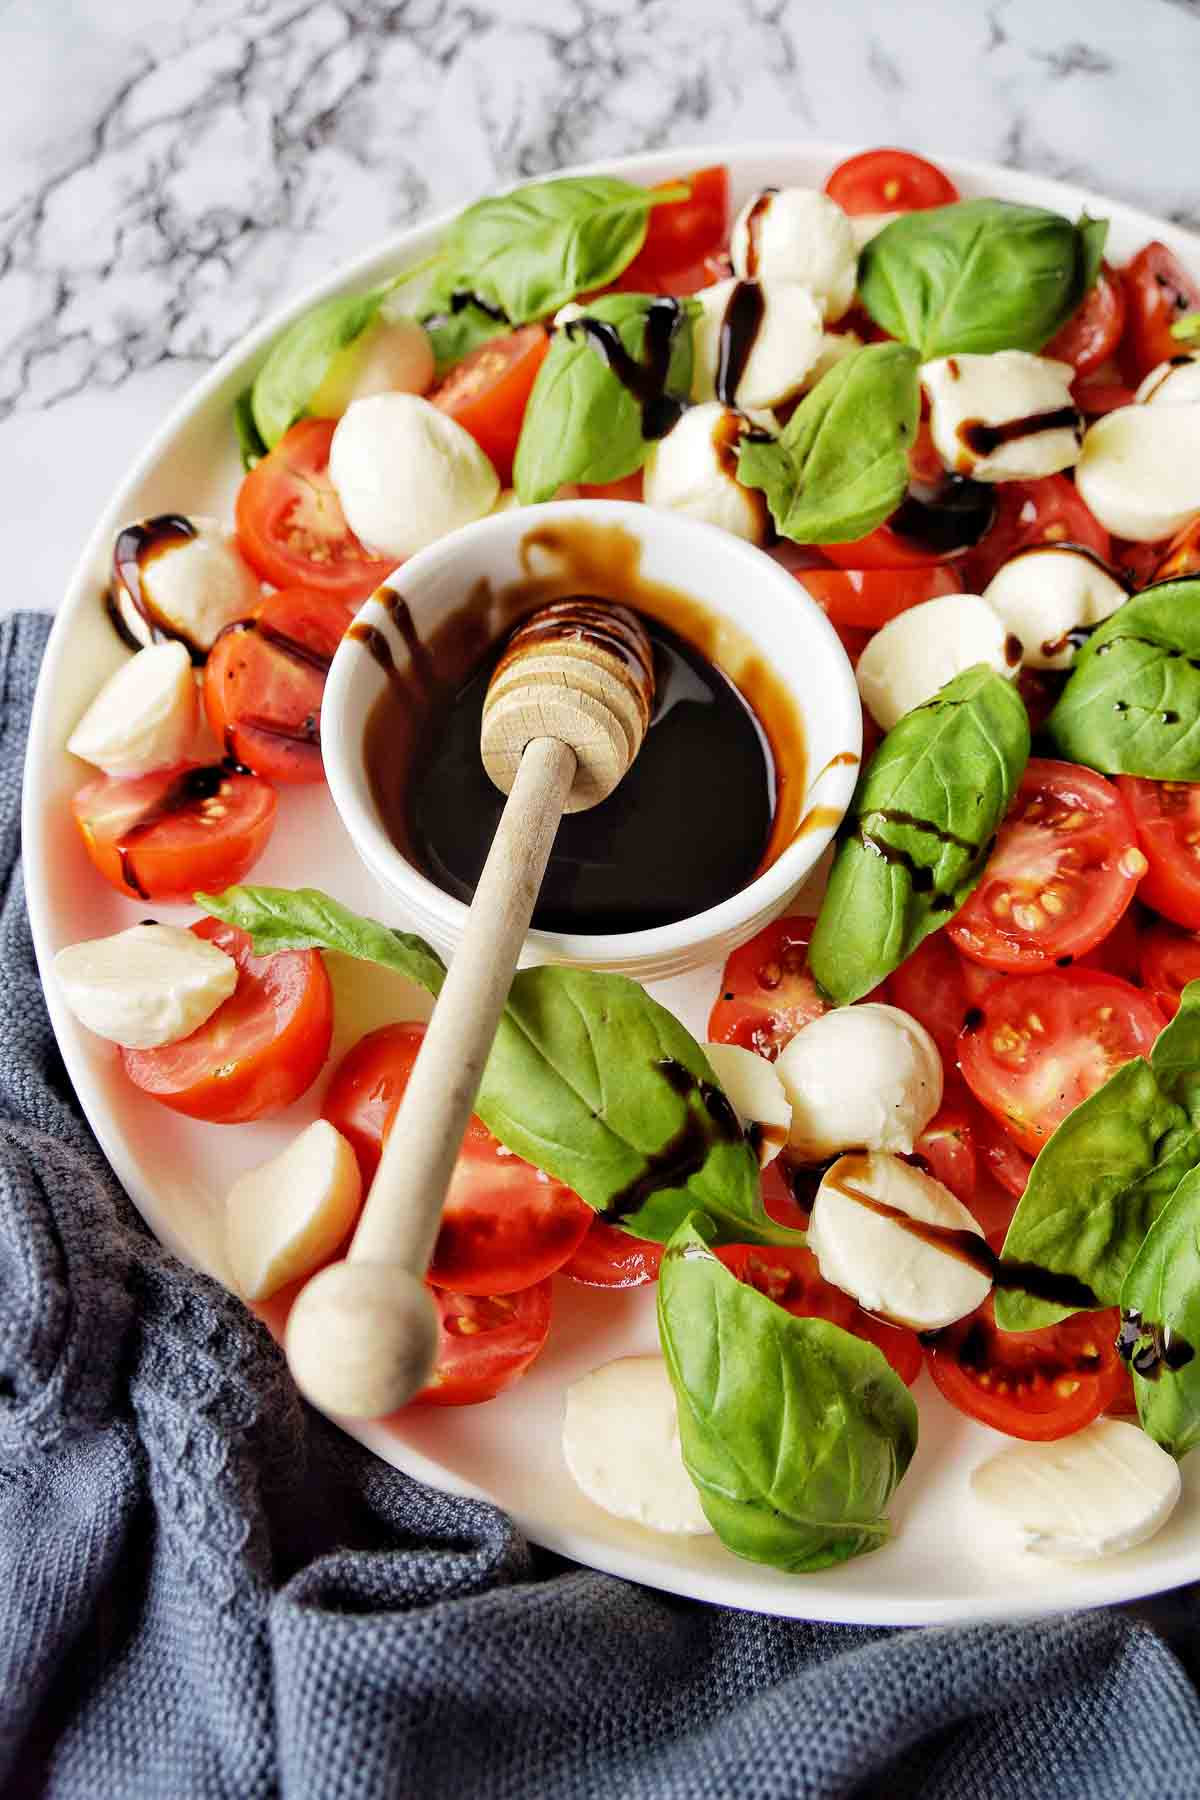 Small server in bowl on balsamic glaze on a white plate with caprese salad